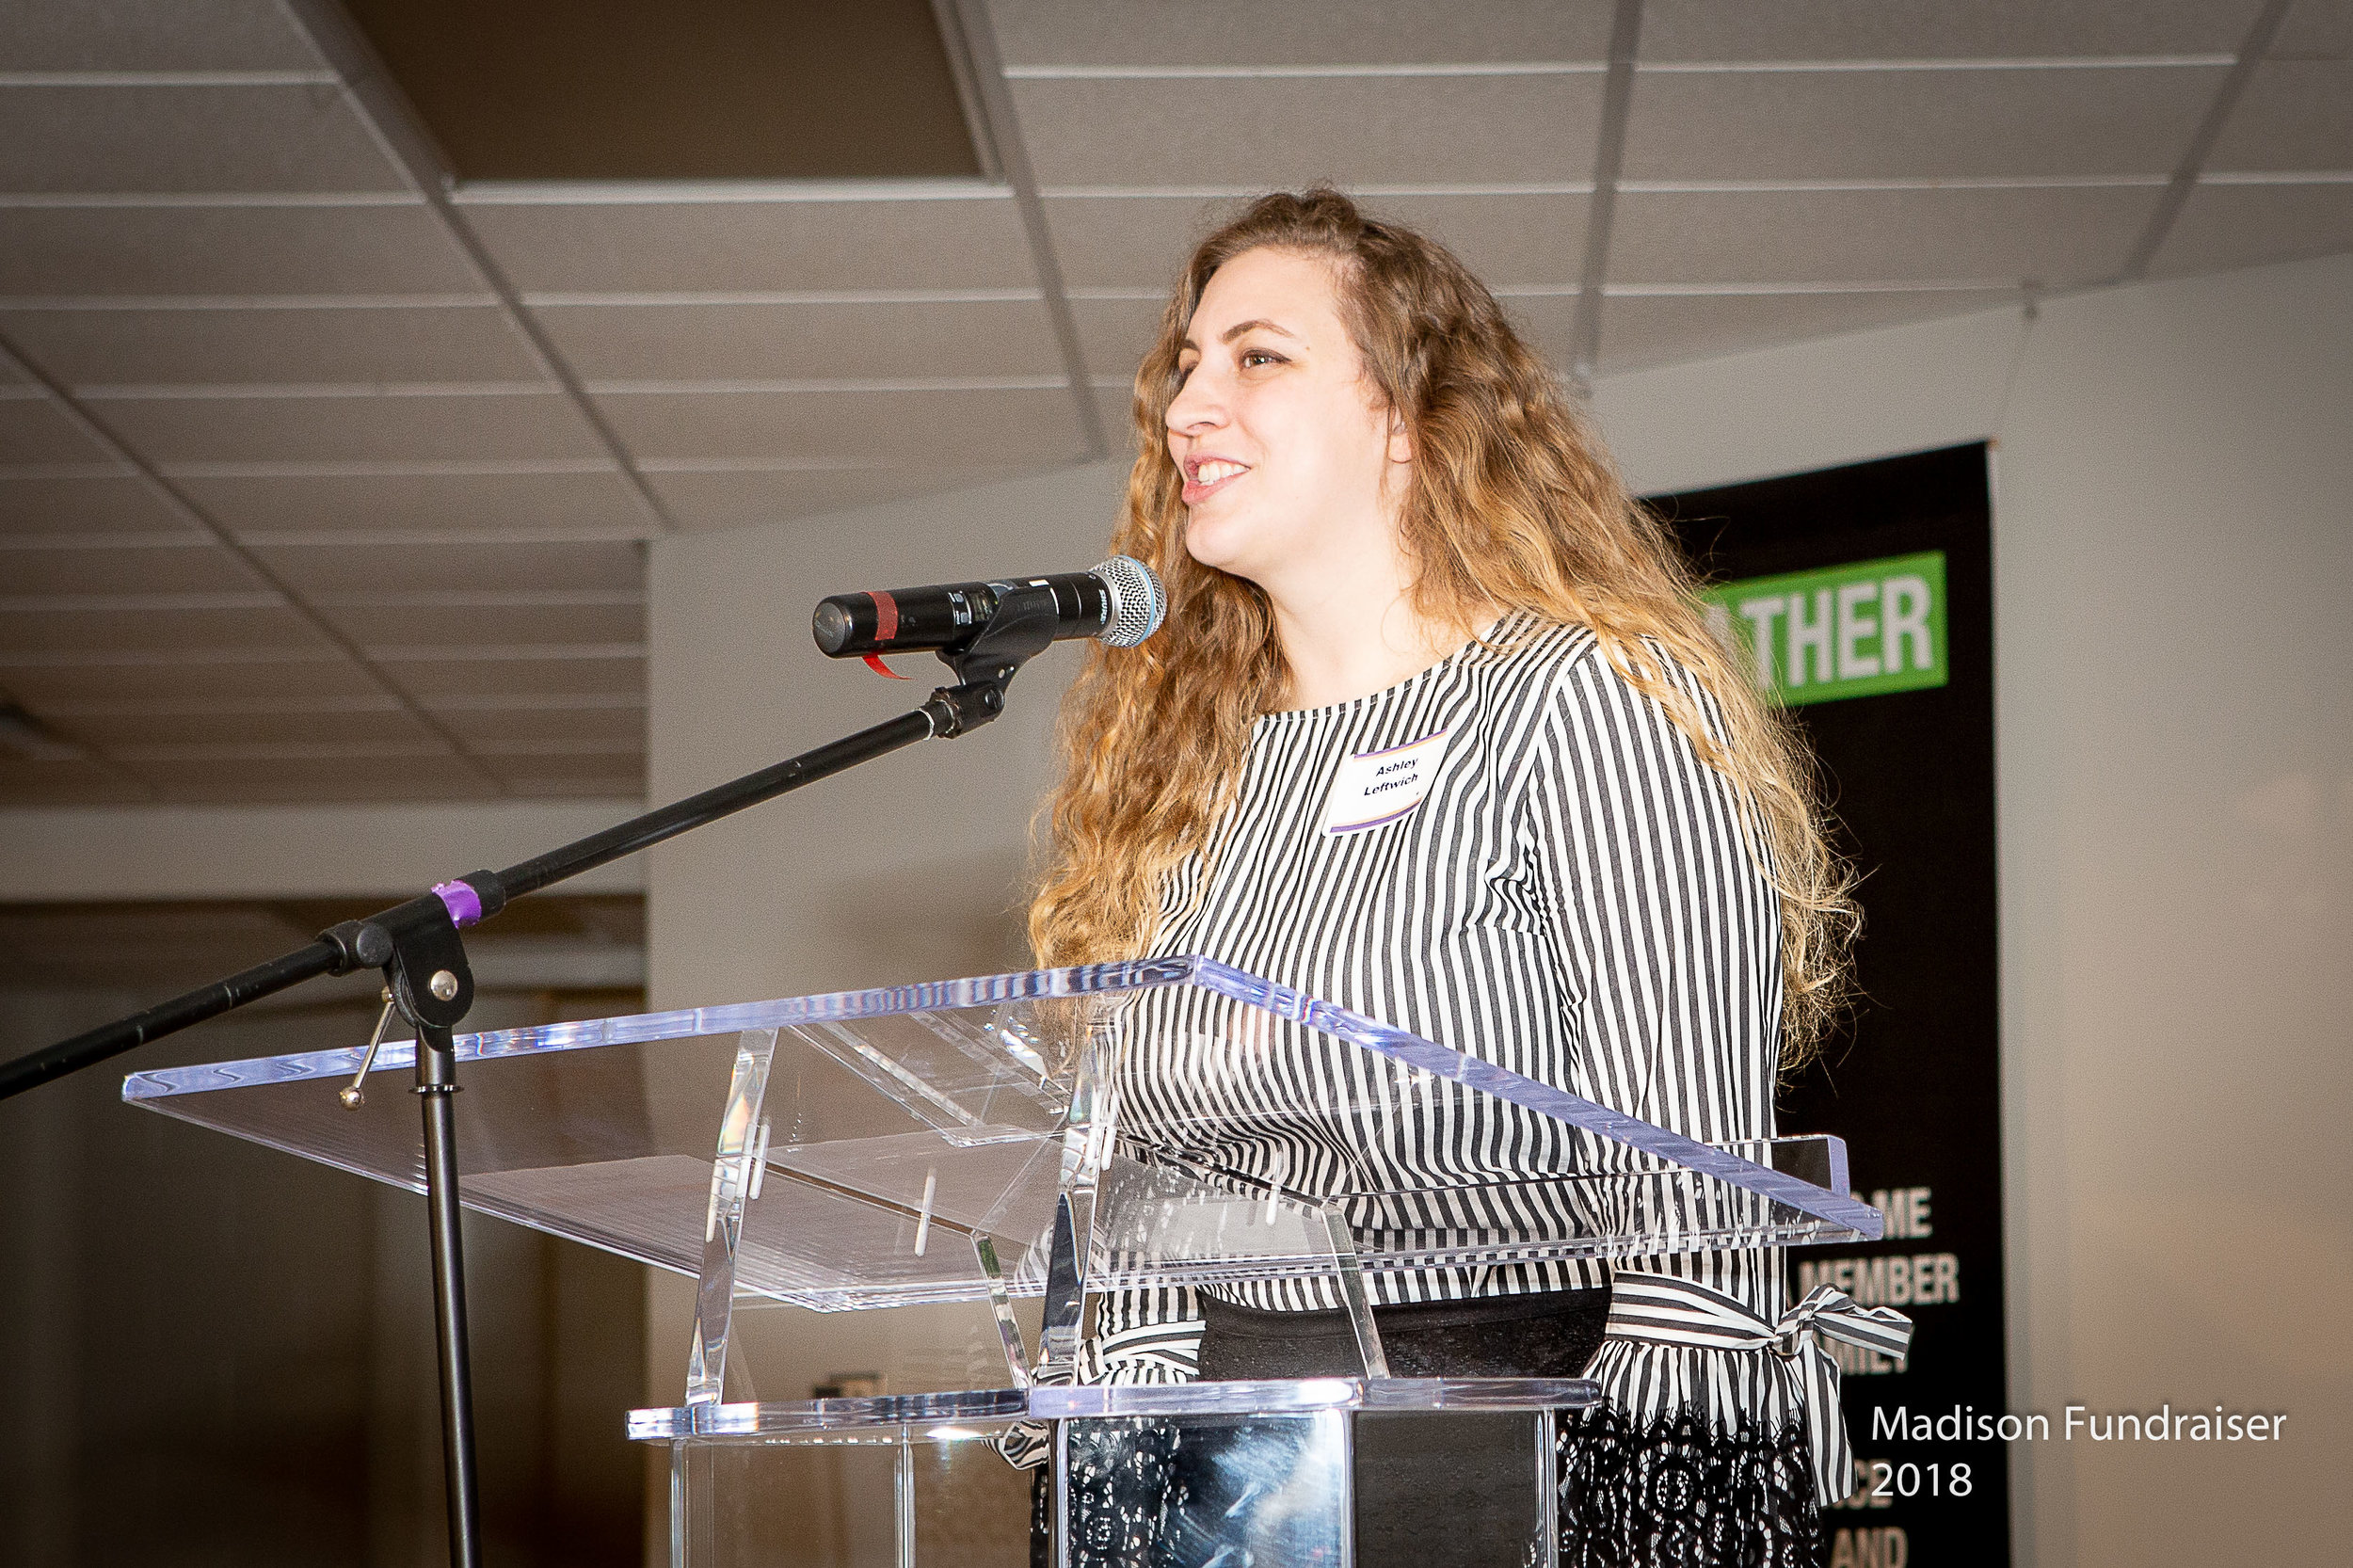 Ashley Leftwich, Event Director